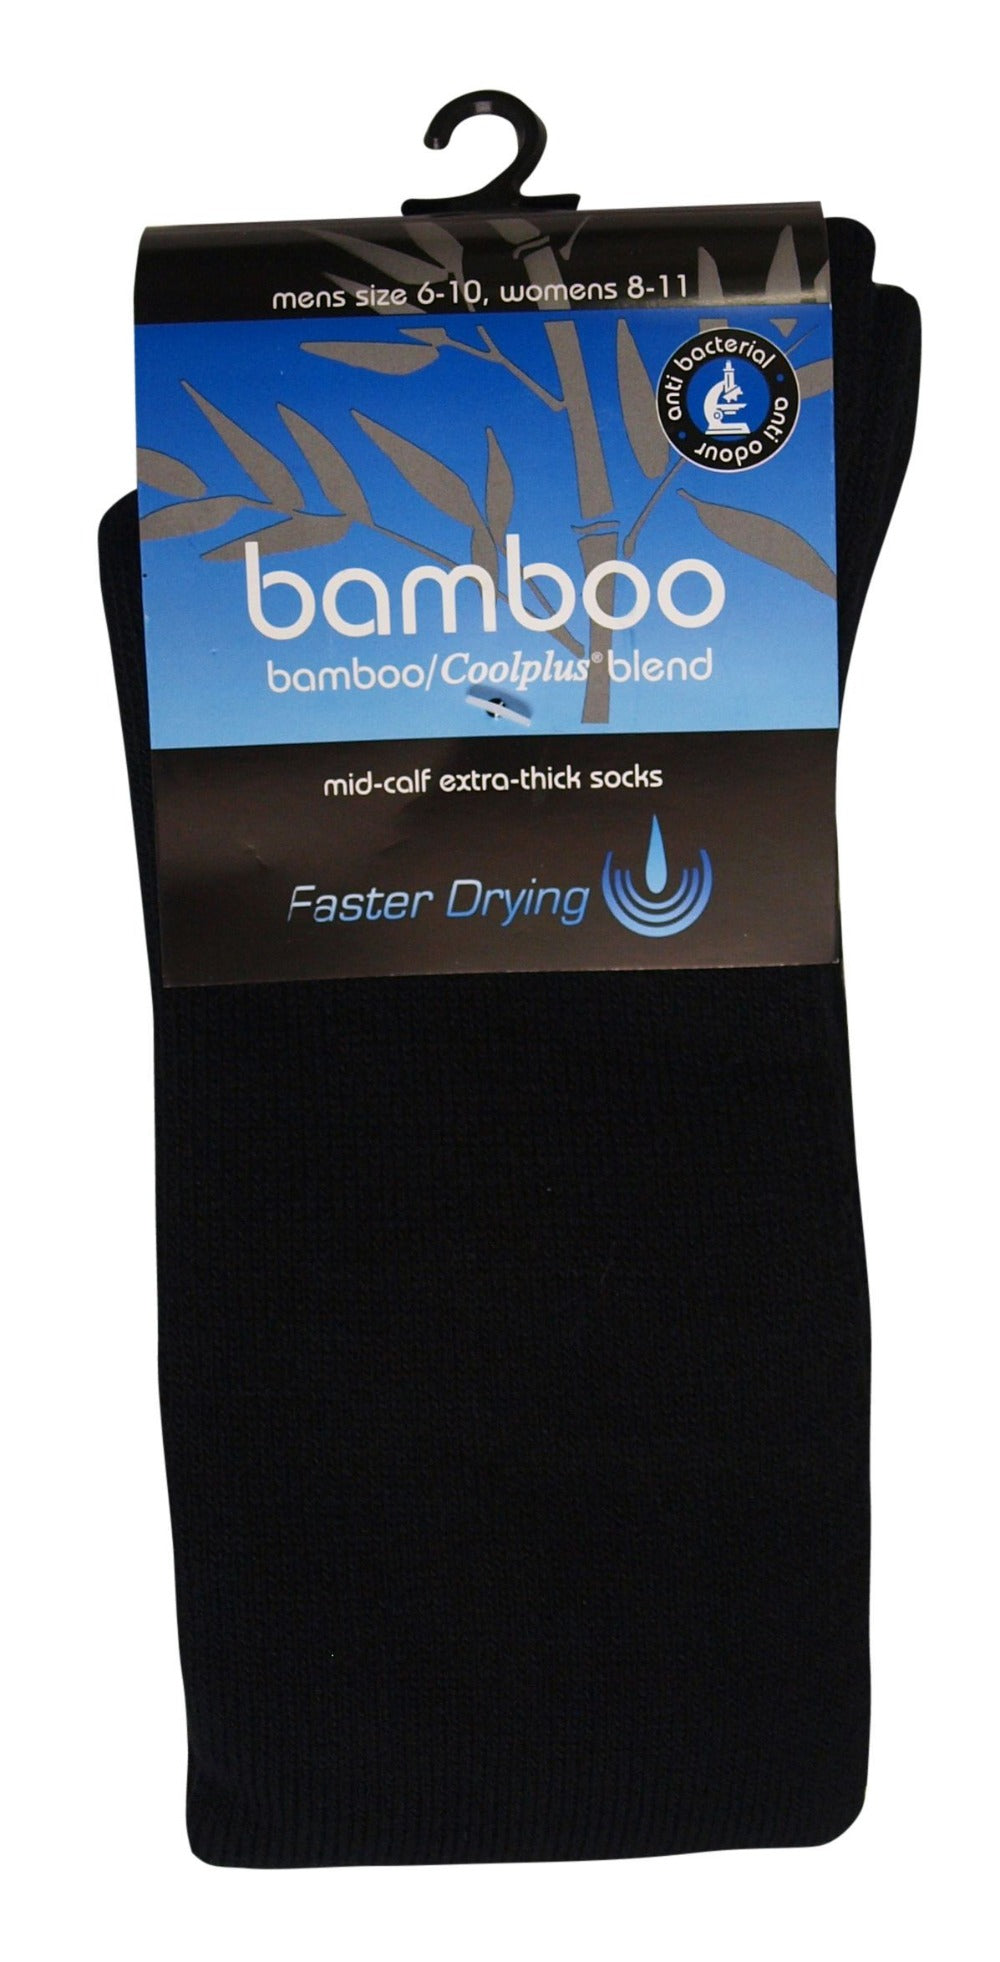 Bamboo Faster Drying Socks - Khaki